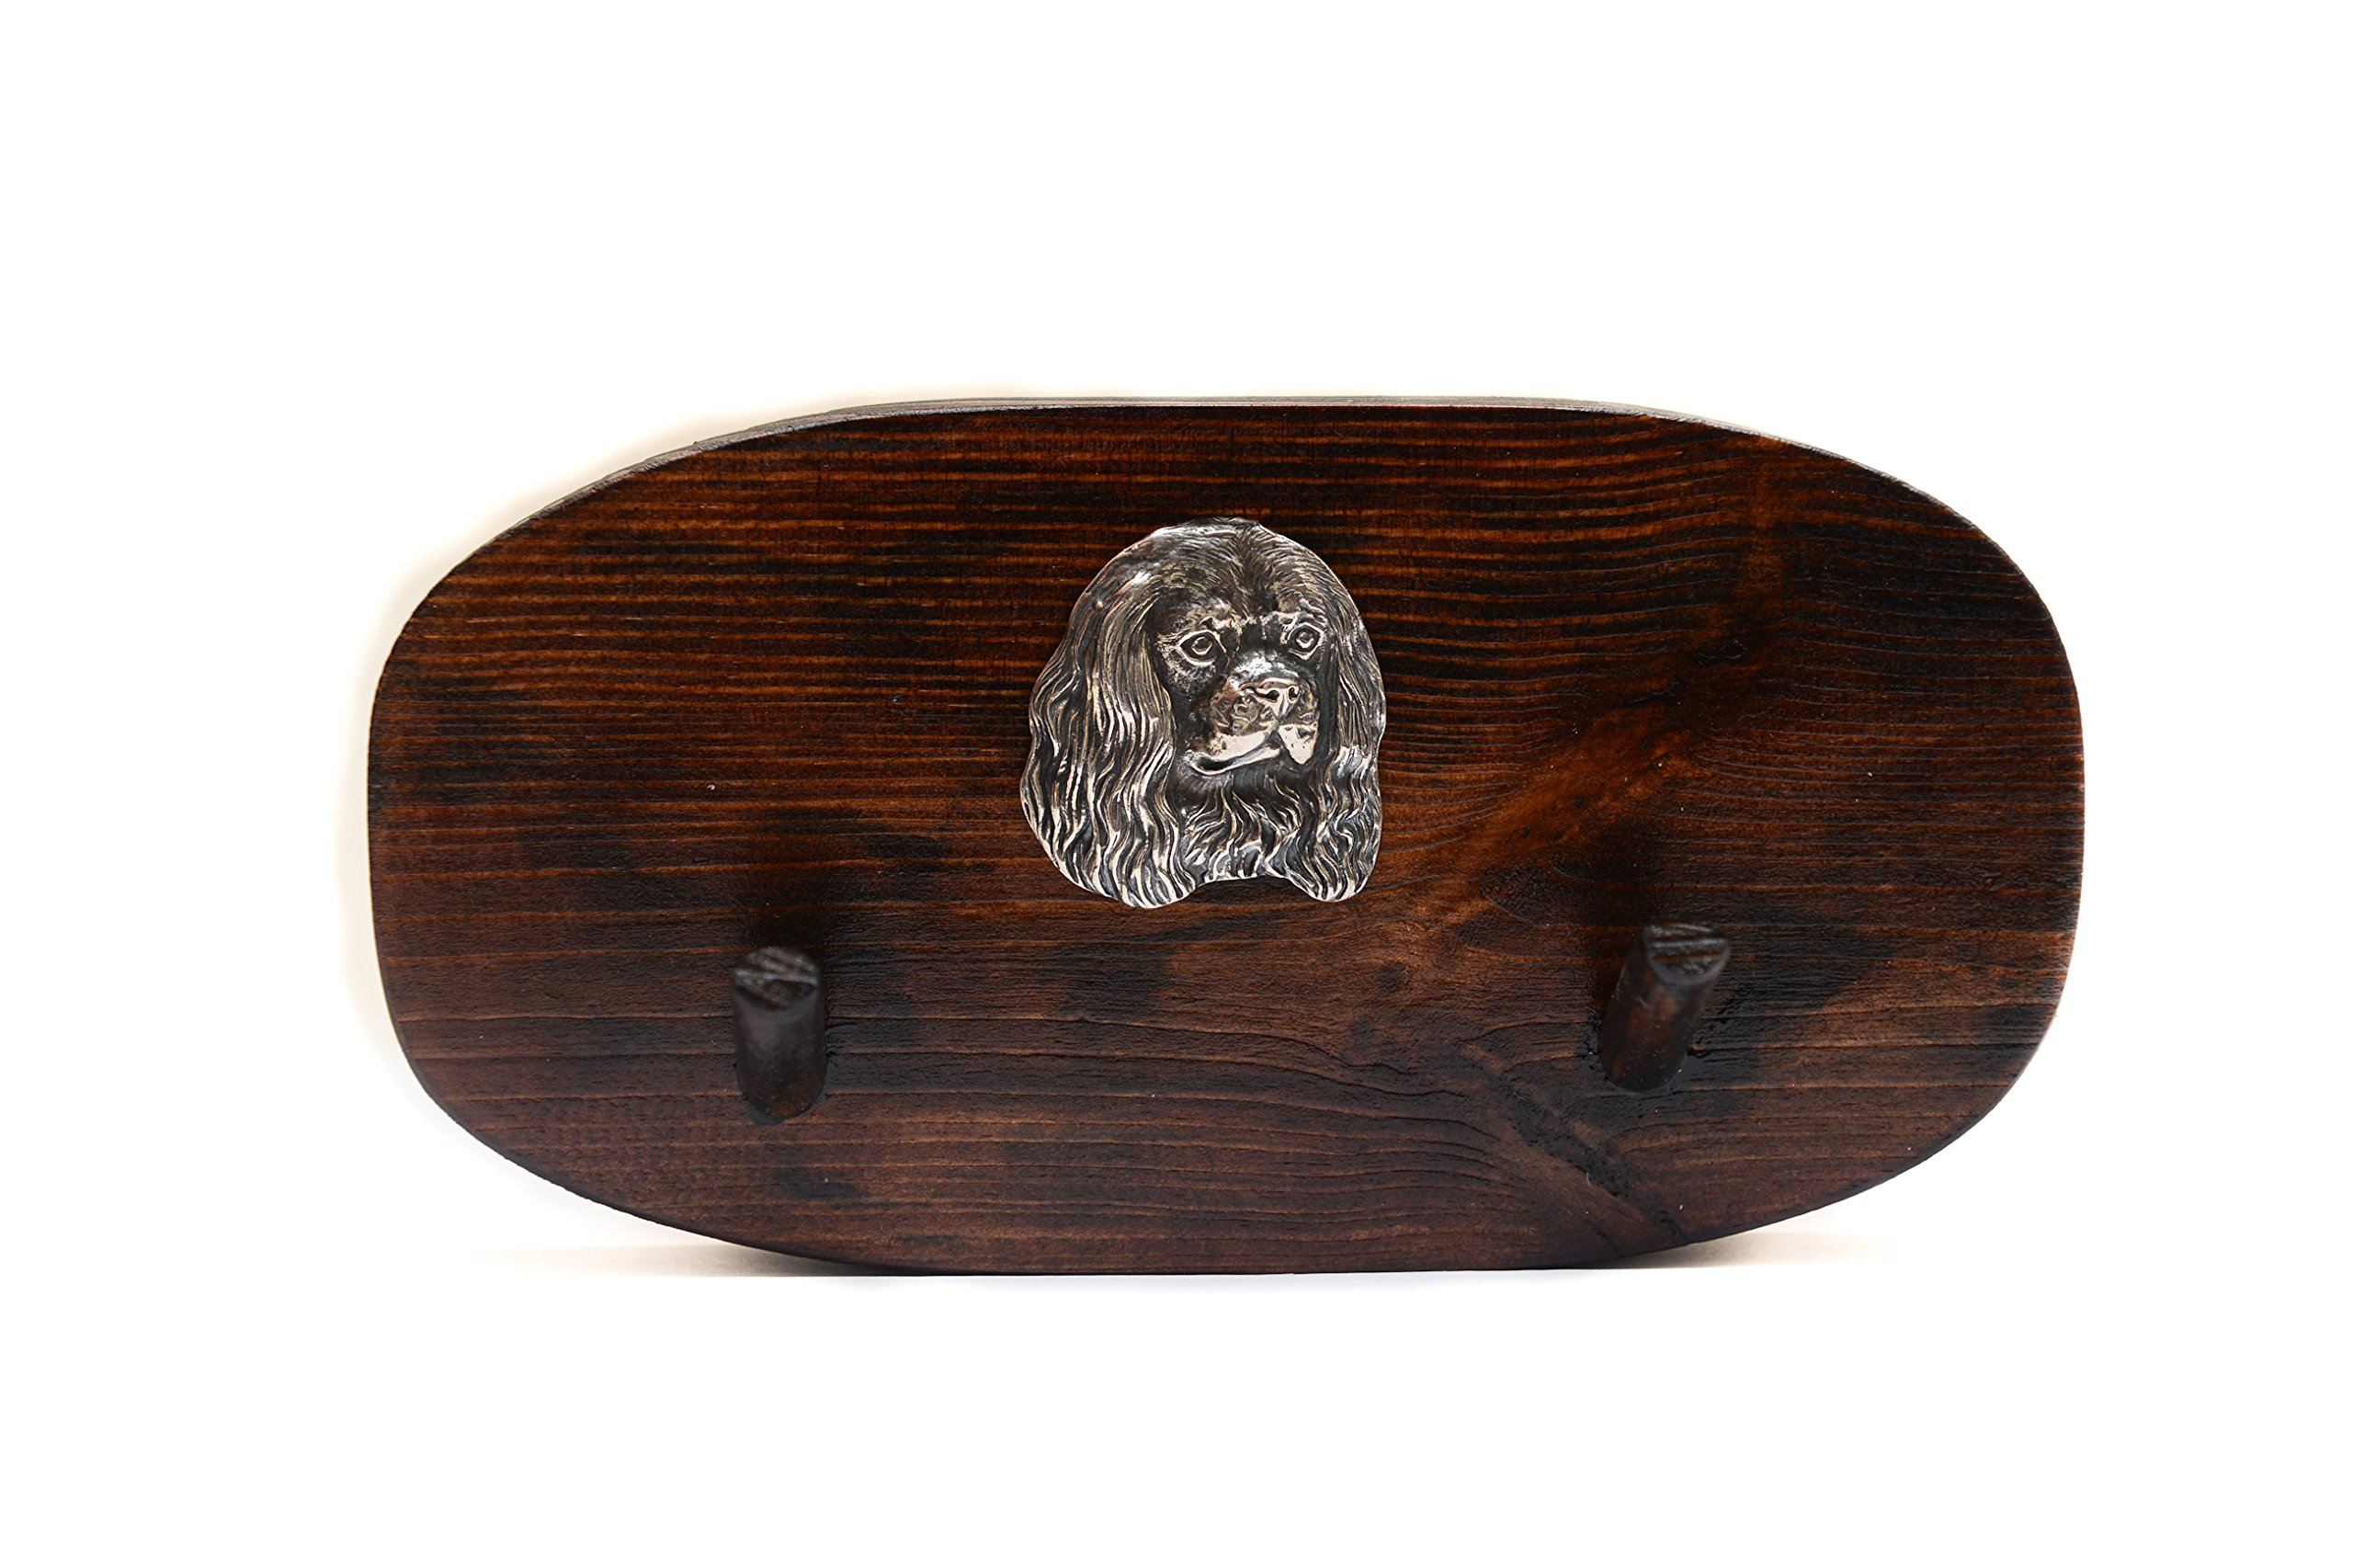 Cavalier King Charles Spaniel, Unique Wooden Hanger with a Relief of a Purebred Dog